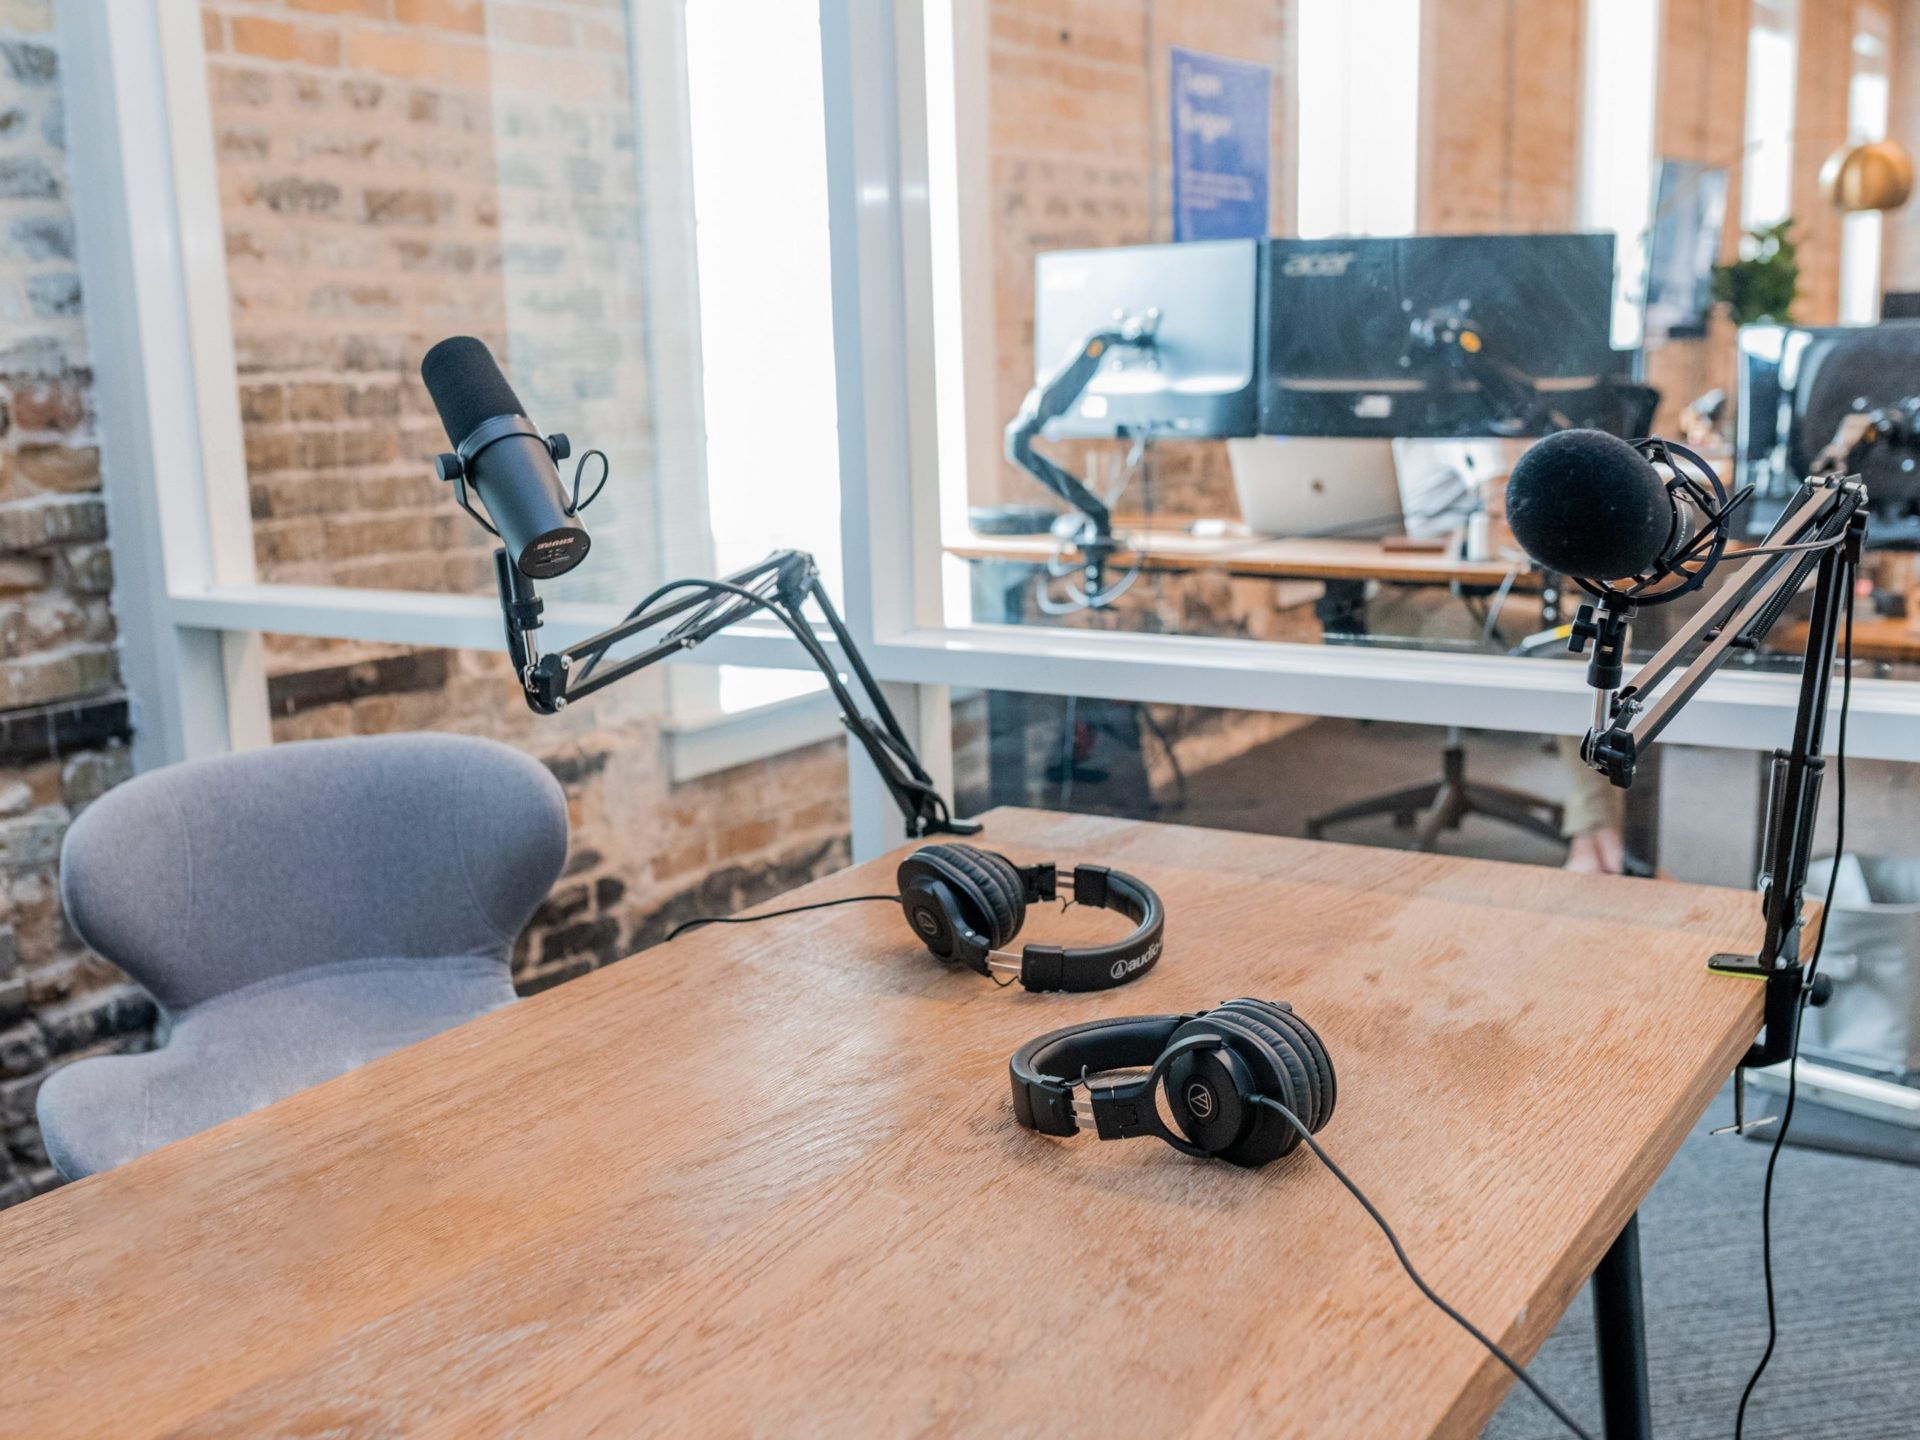 Getting Started With Church Podcasting